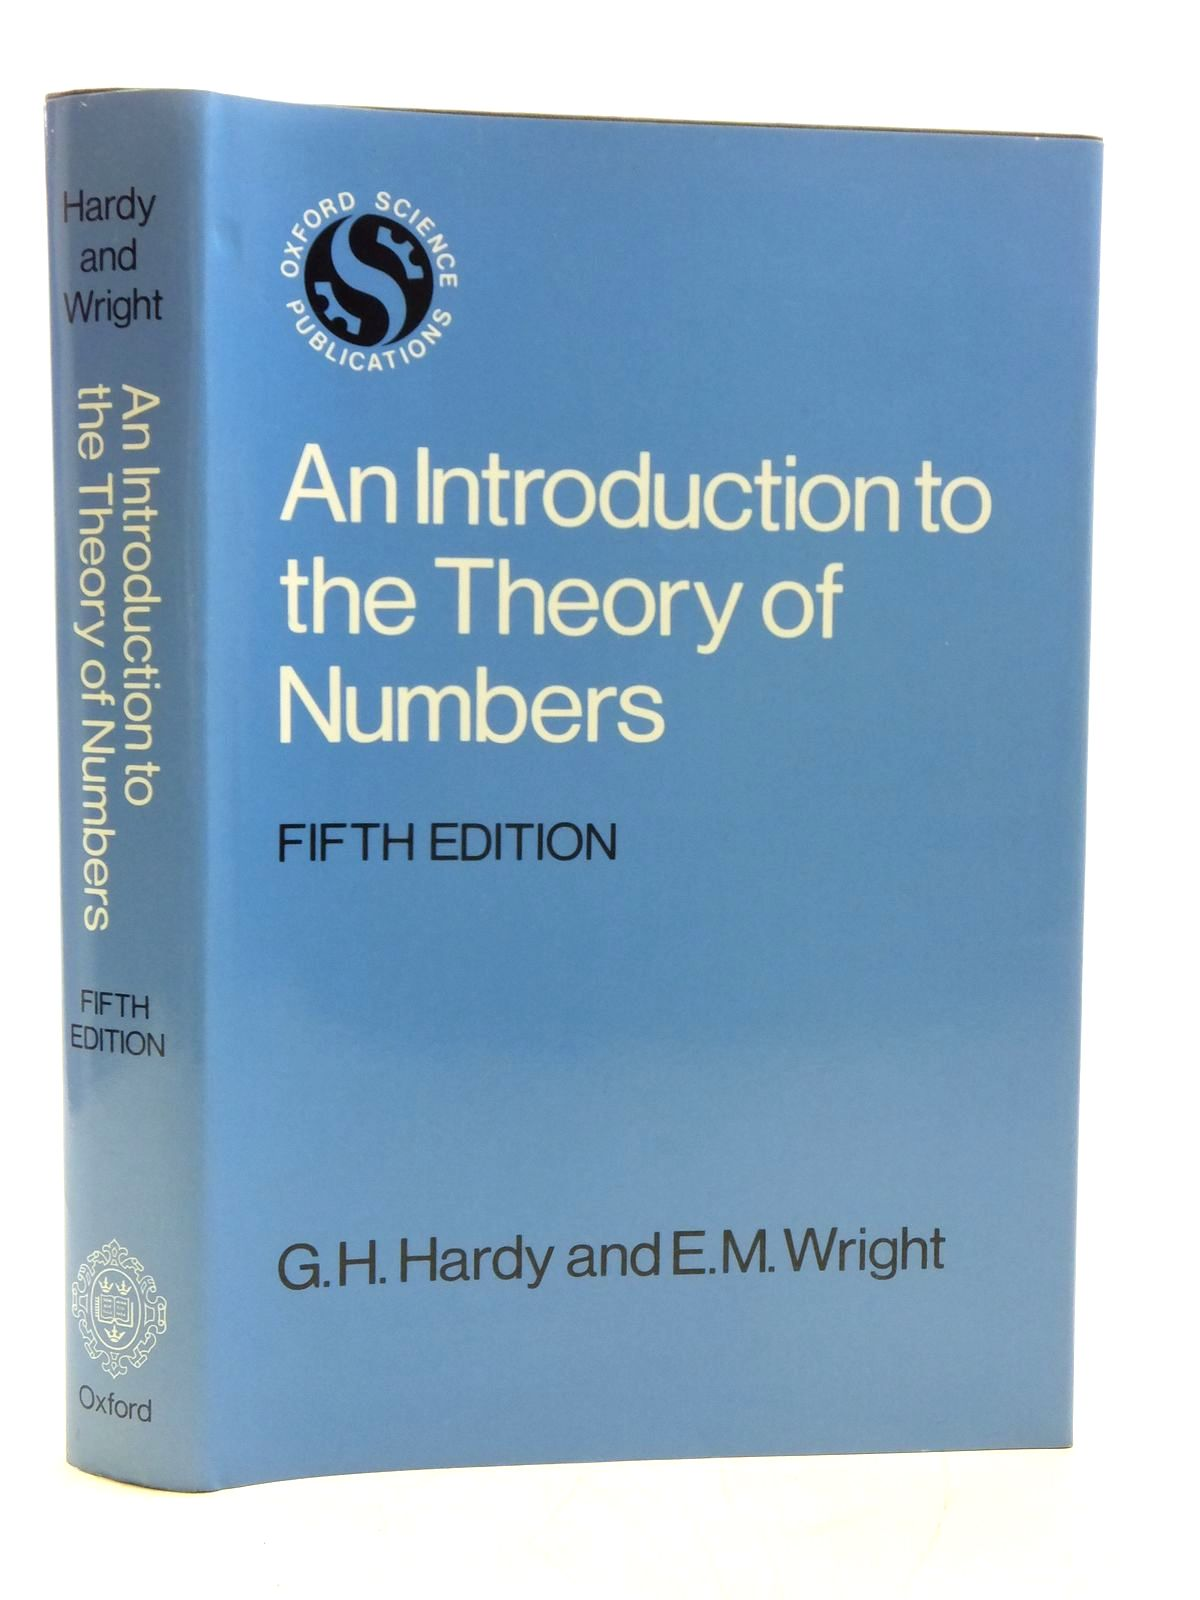 an introduction to the theory of numbers niven pdf